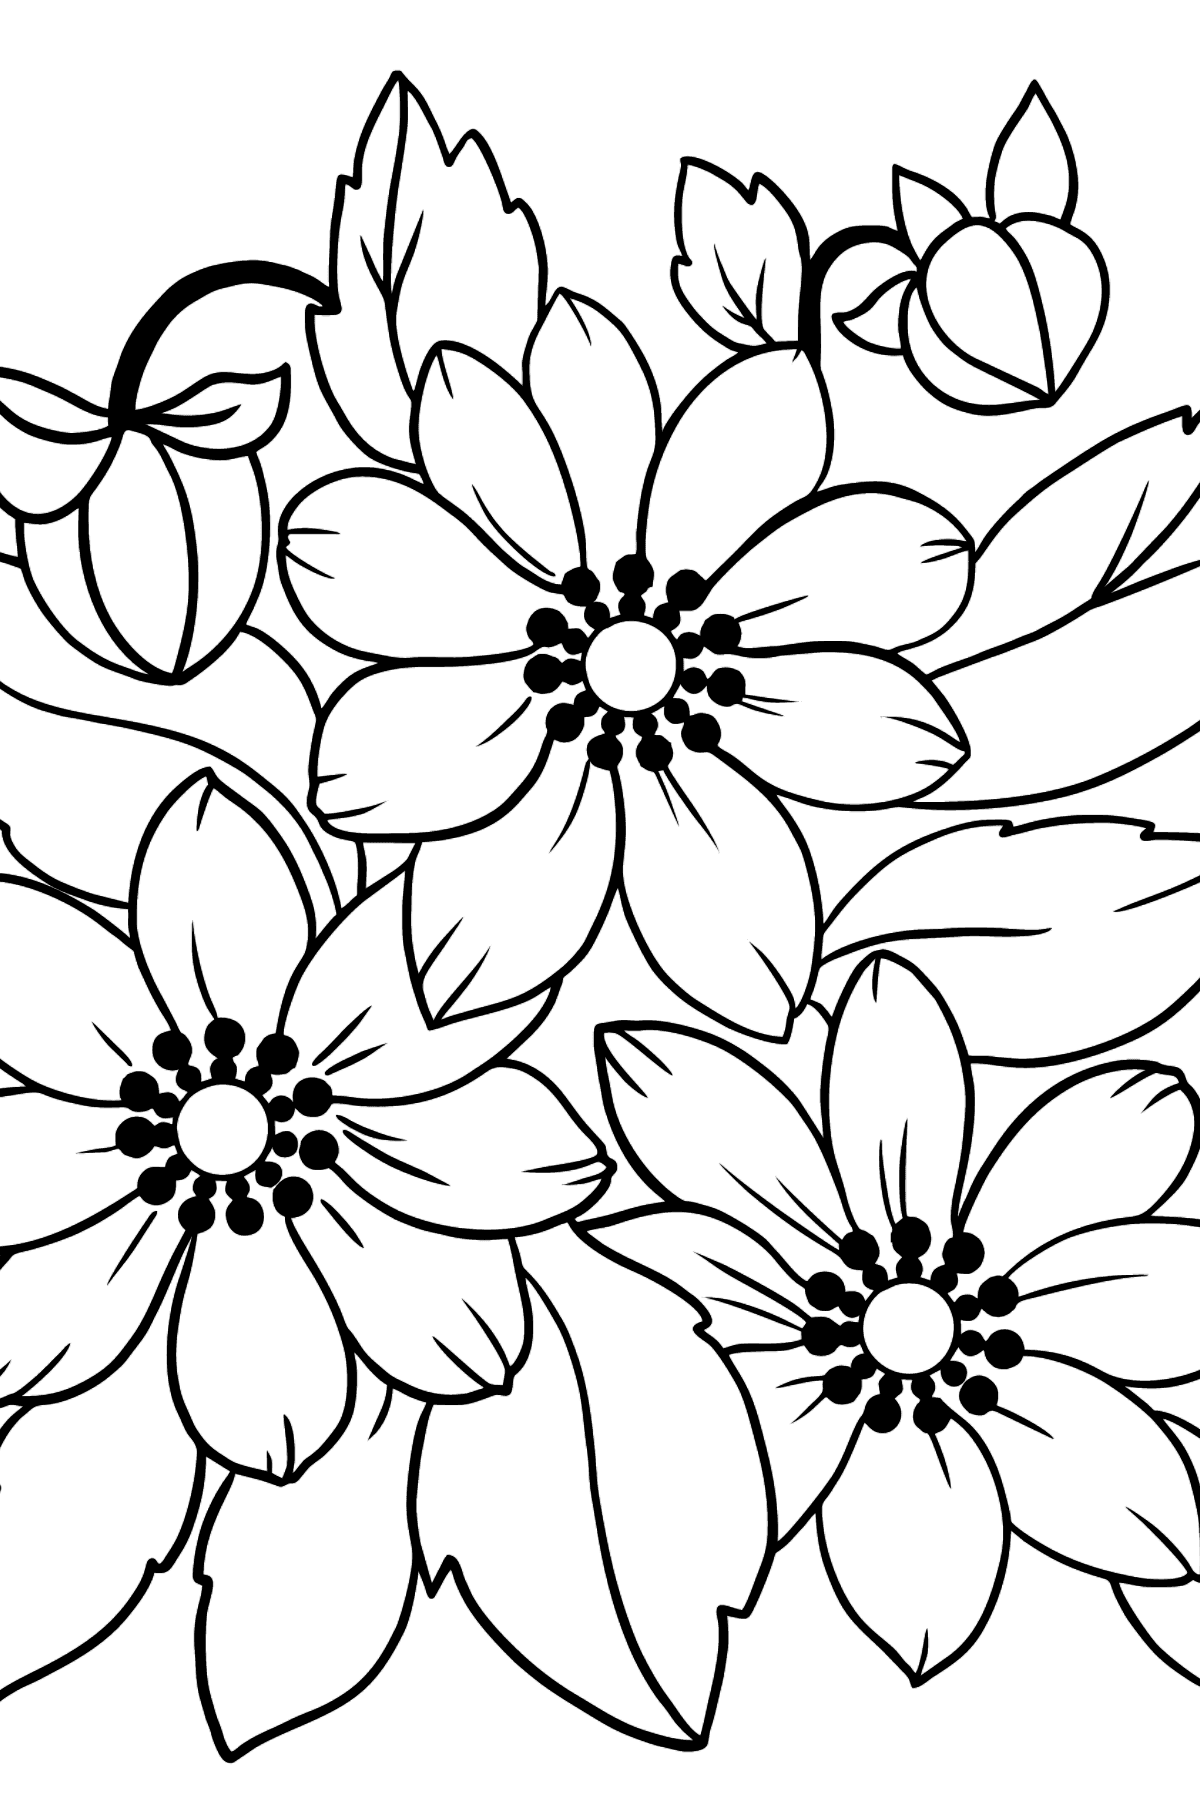 Flower Coloring Page - A Tricolor Anemone - Coloring Pages for Kids